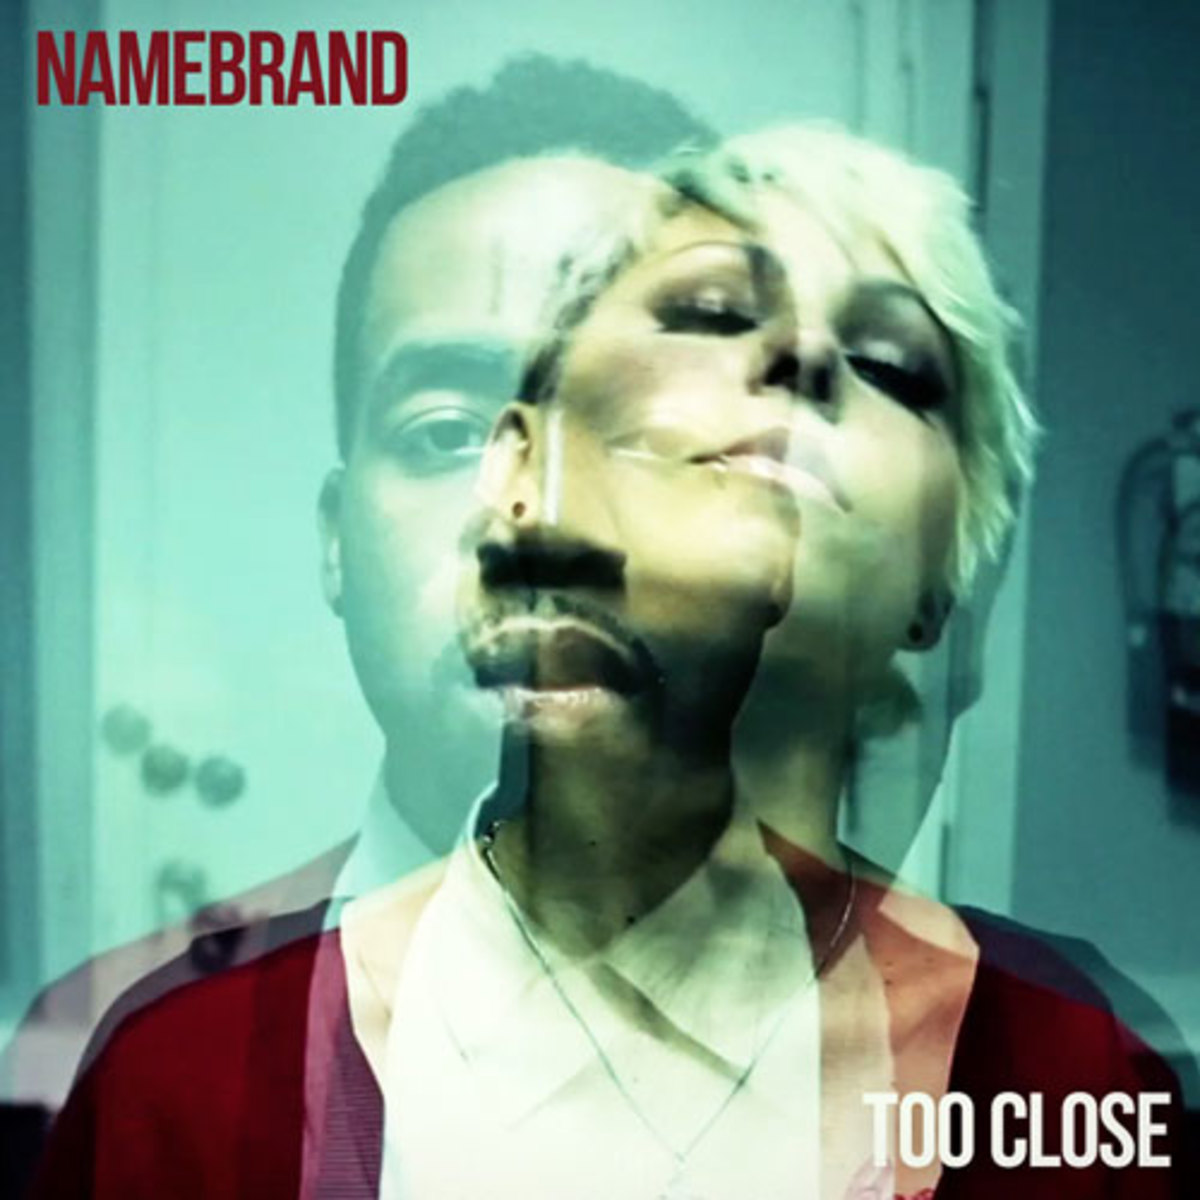 namebrand-tooclose.jpg